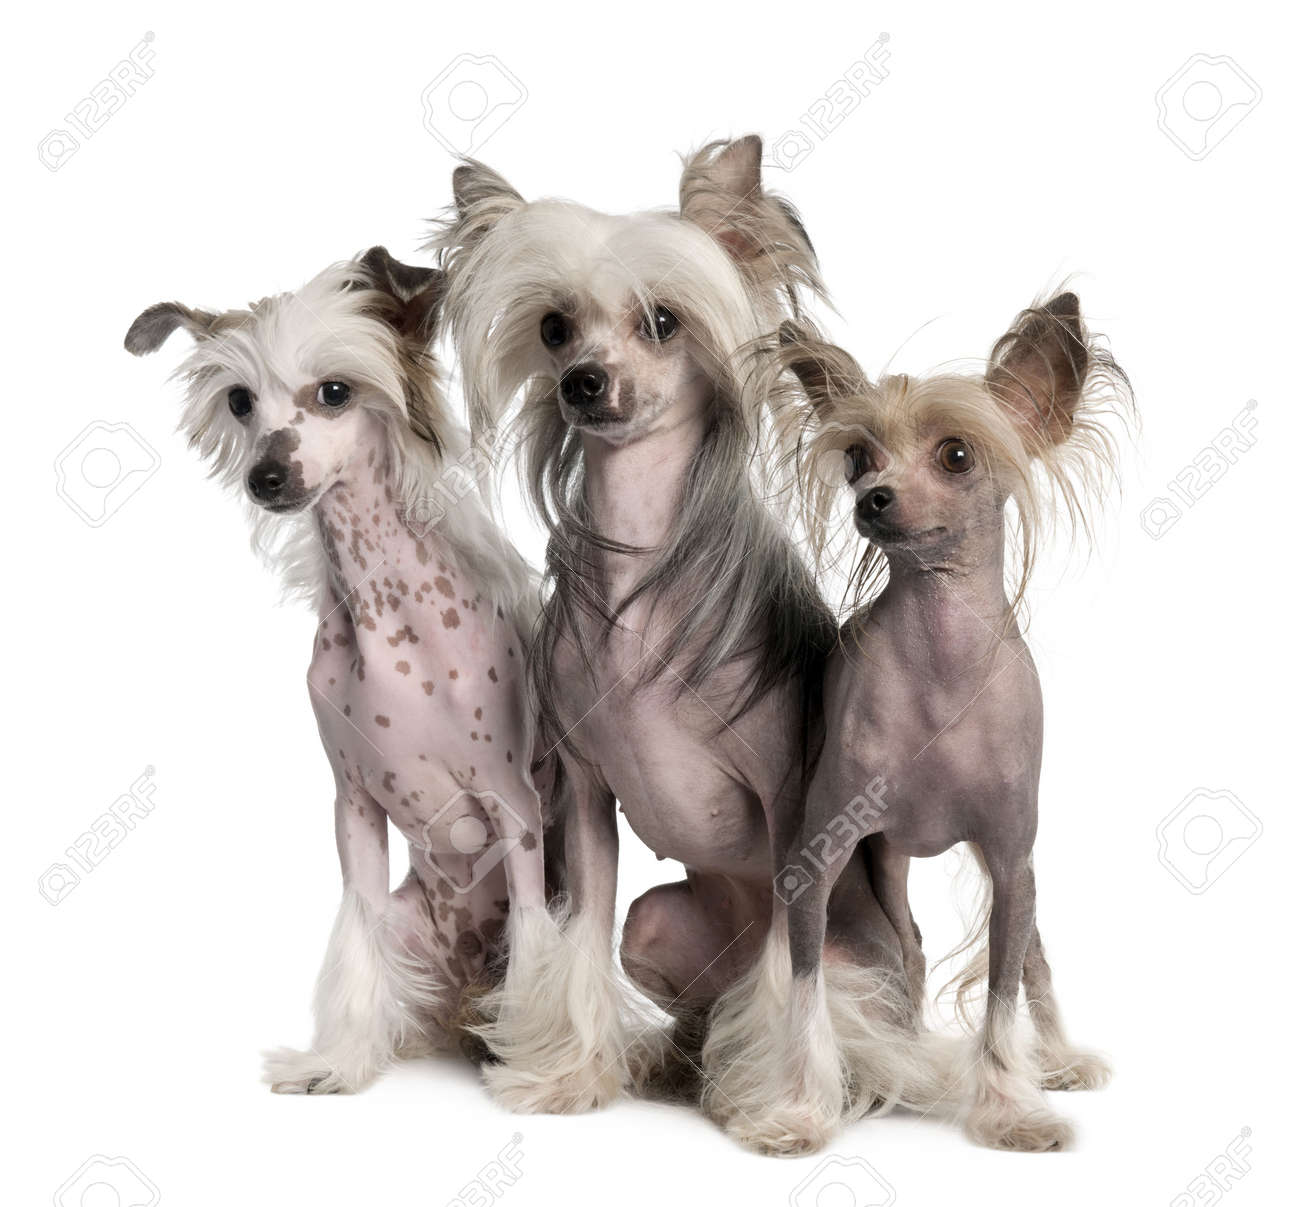 group of three Chinese Crested Dog - Hairless (3 years old) in front of a white background Stock Photo - 4712706